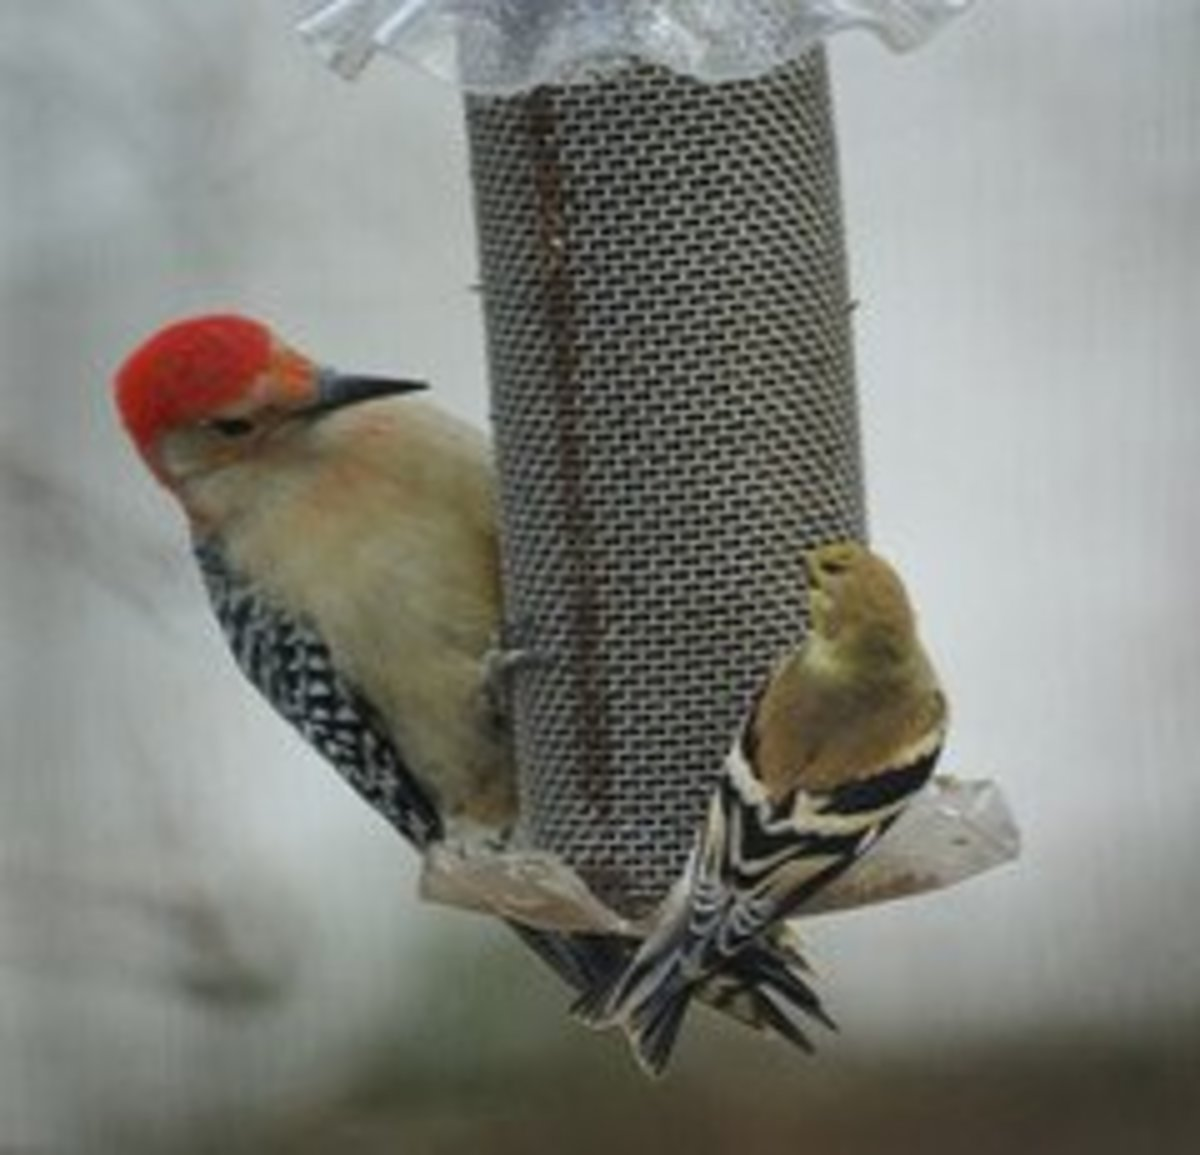 Quite a difference in size between this red-bellied woodpecker and the much smaller gold finch!